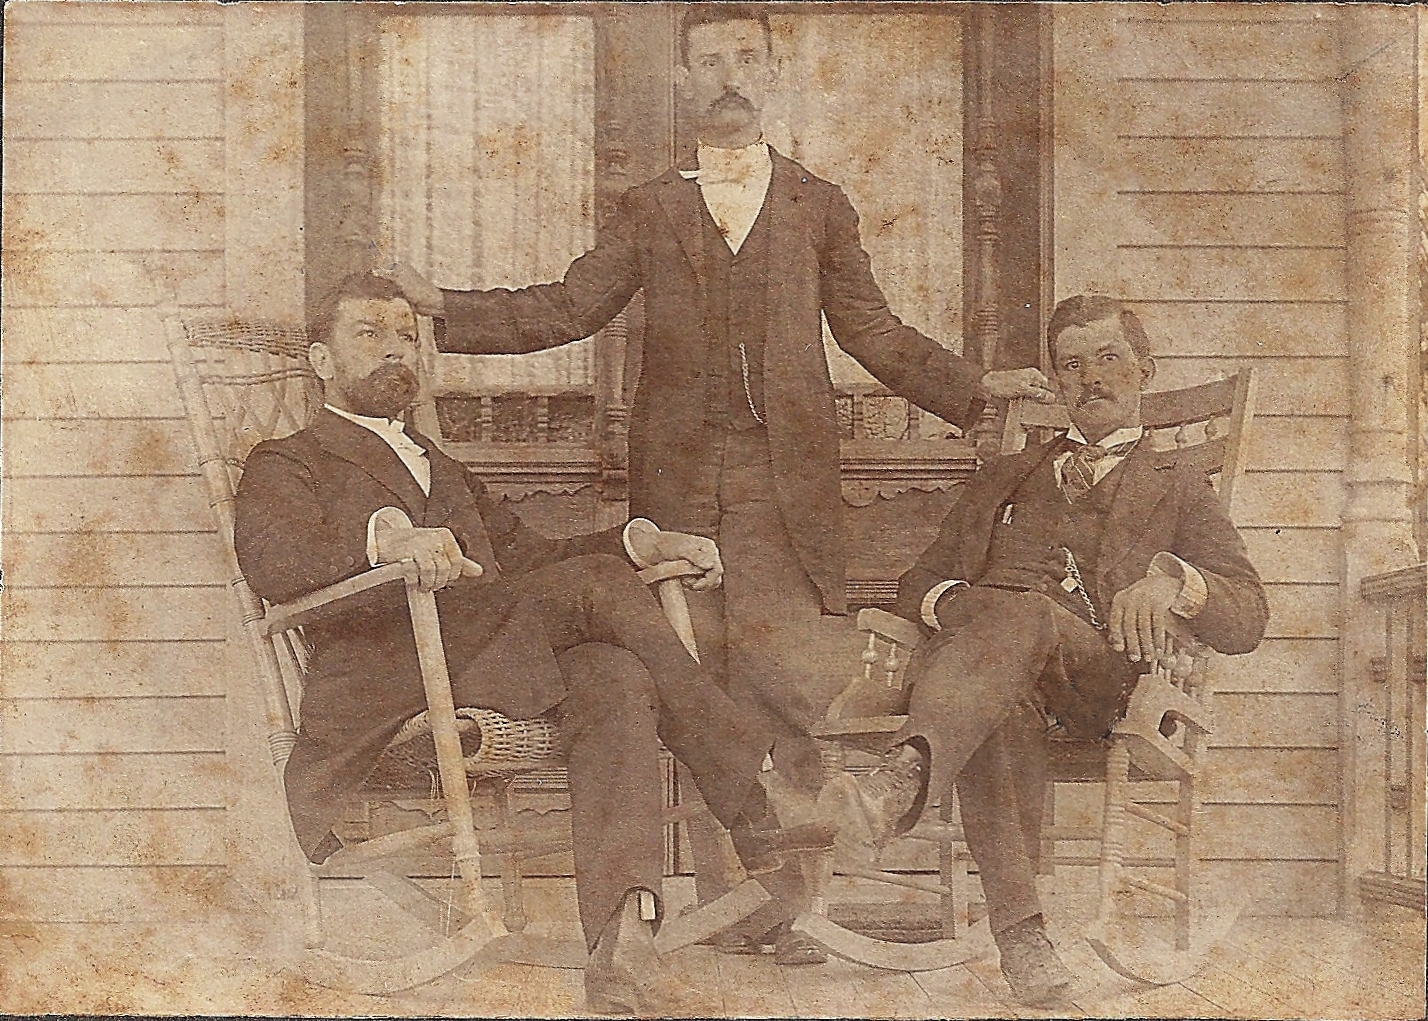 Heisig sons: Theodore the minister, Ernest the physician and CT the businessman, taken May 27, 1901 in front of Ernest's house in Houston, Texas